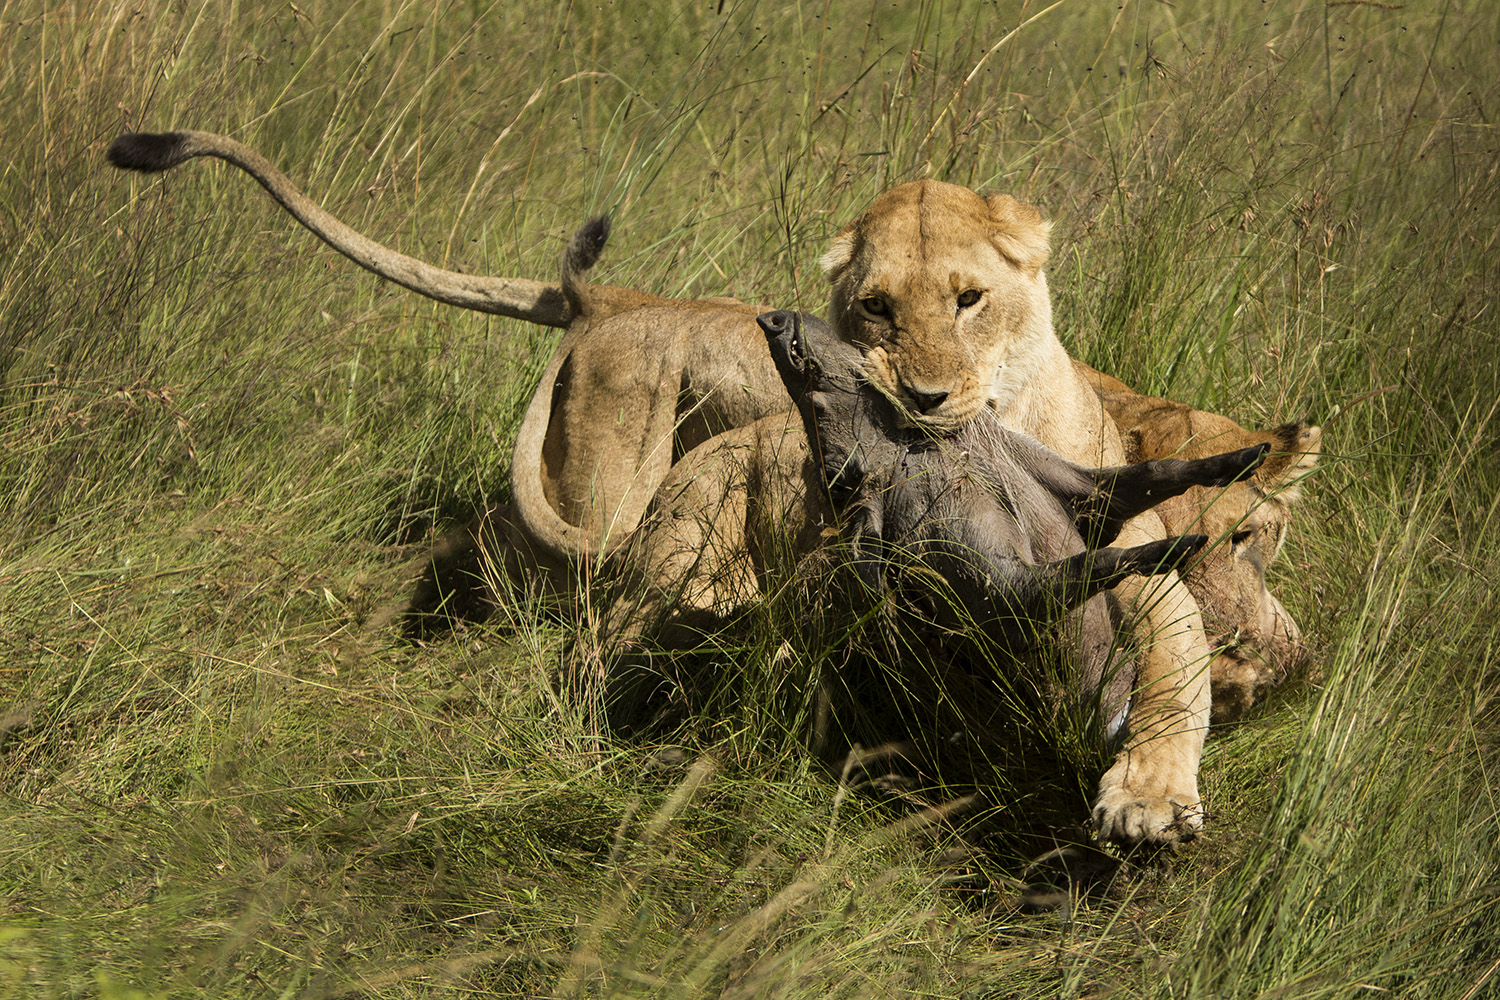 Lioness and warthog fight